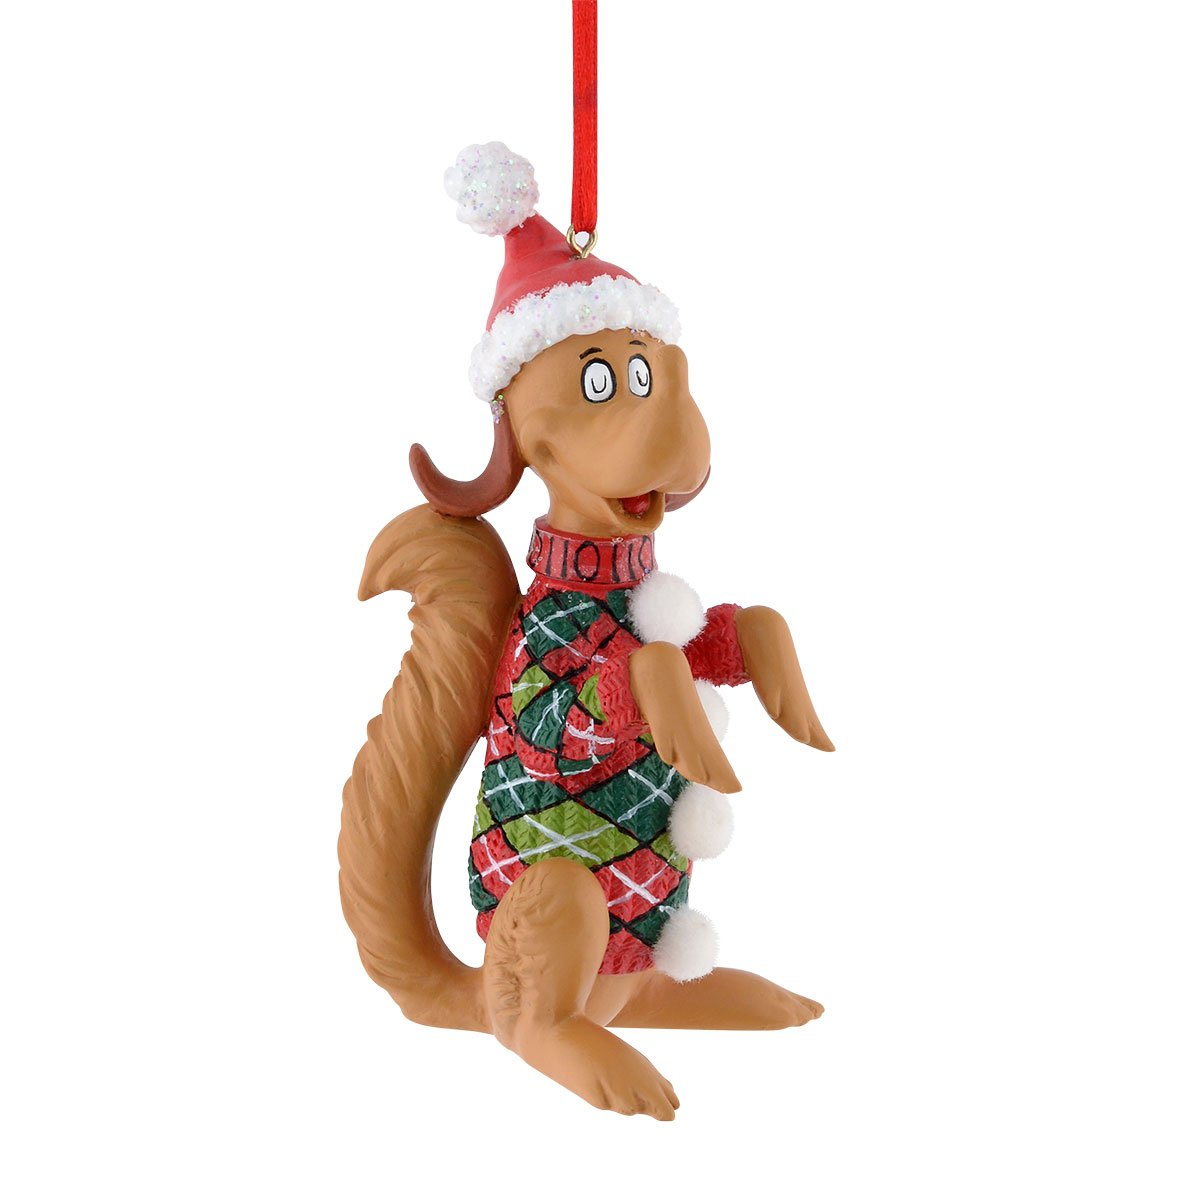 Department 56 Grinch Max Argyle Sweater Ornament, 3.75 inch